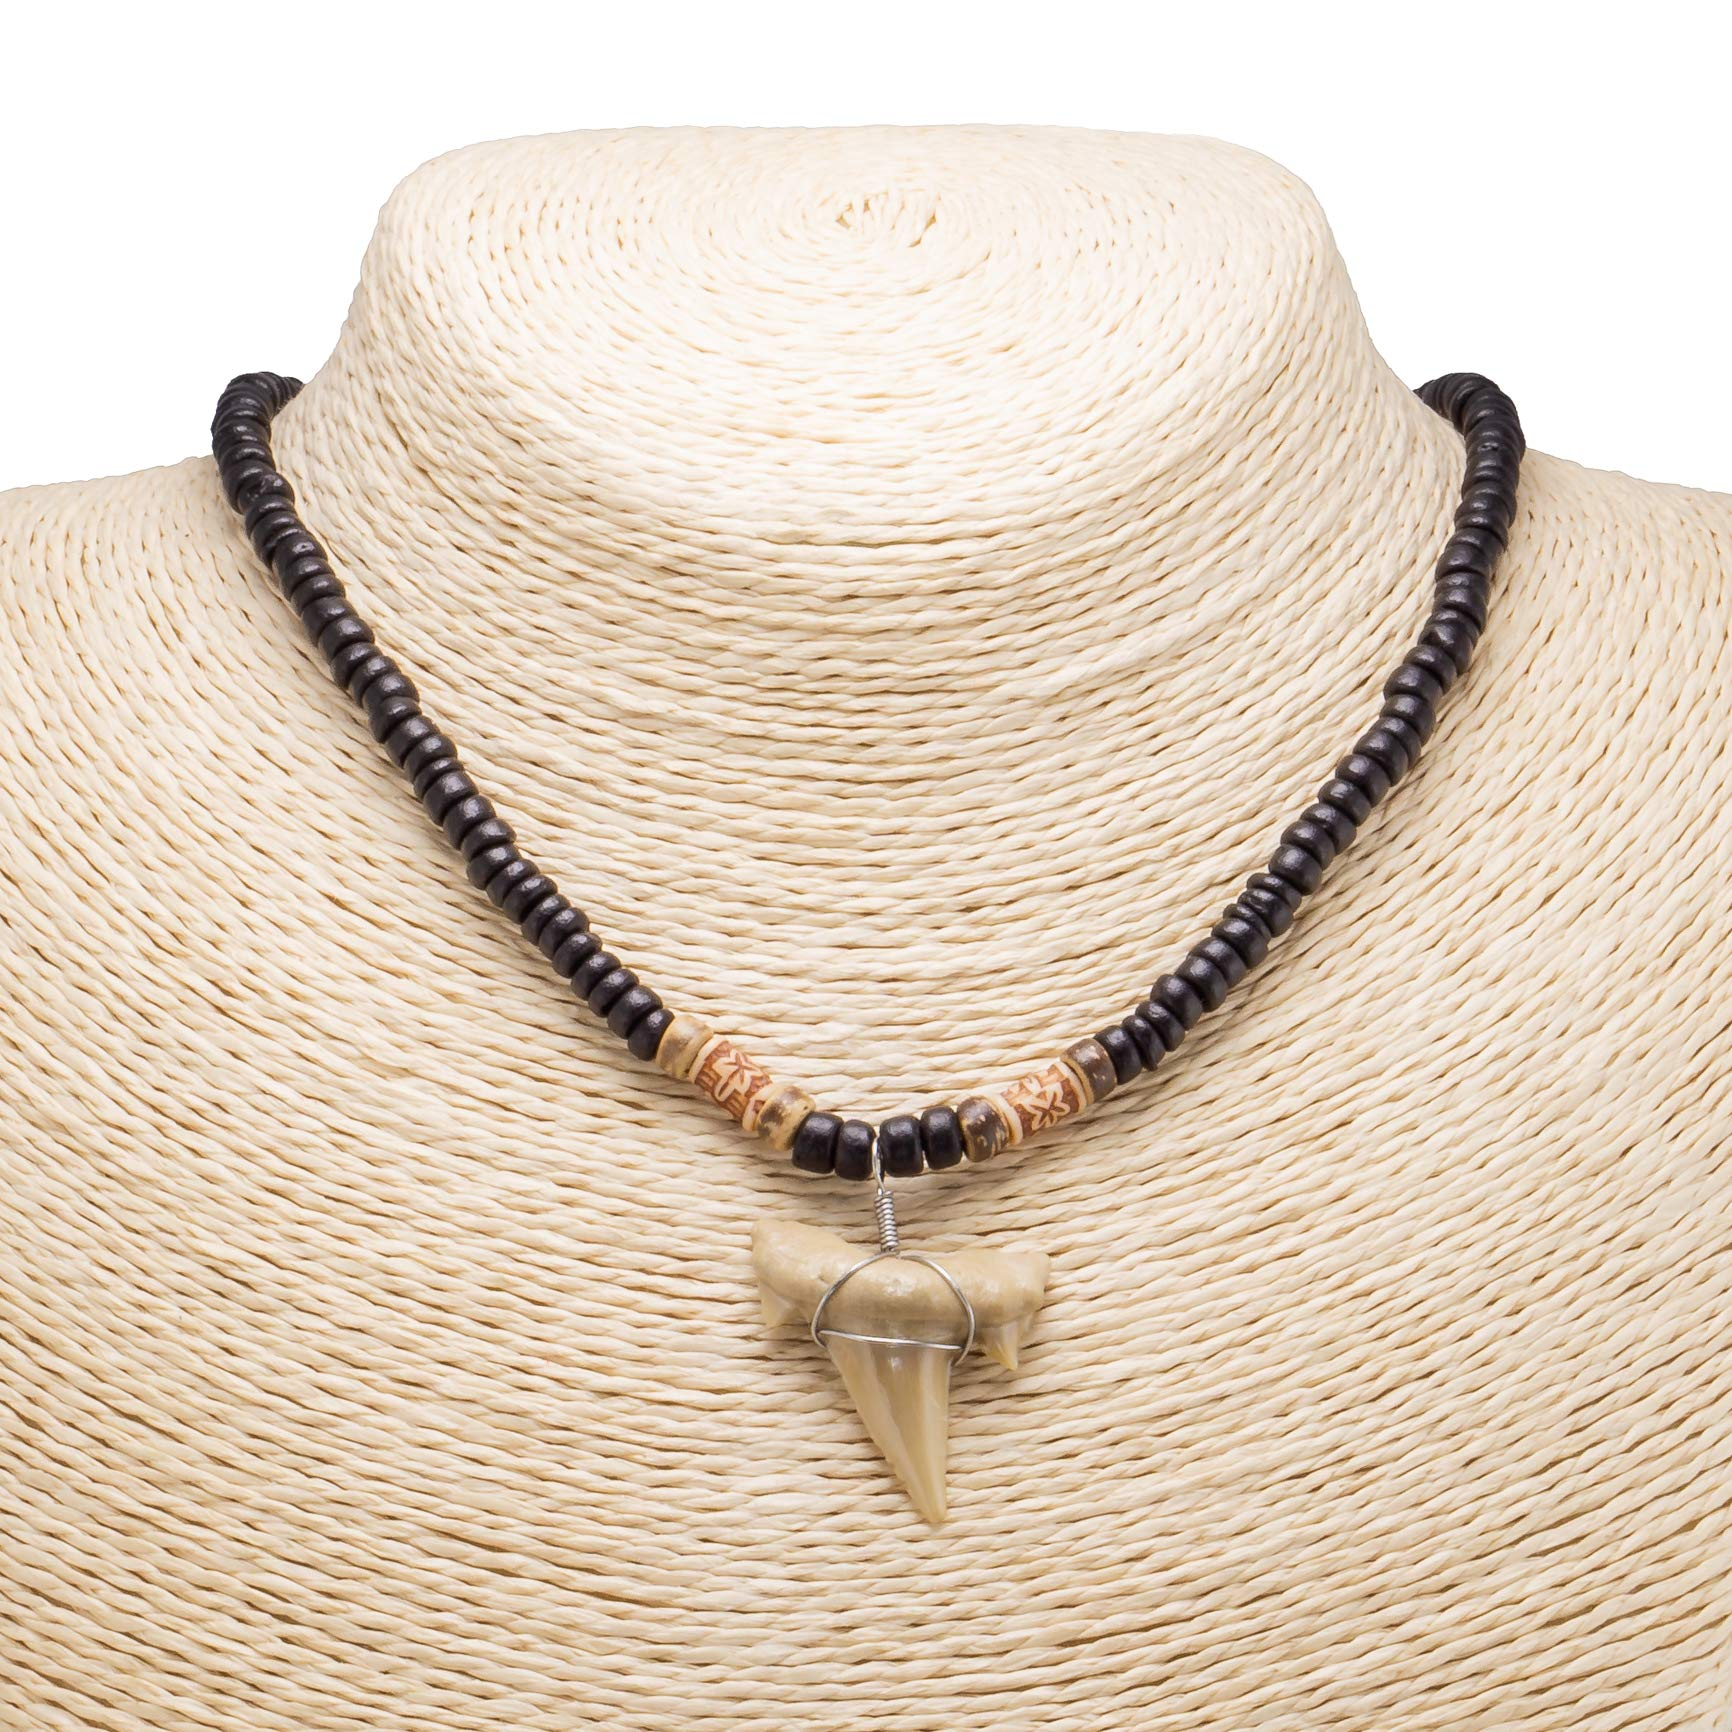 "1""+ Shark Tooth Pendant on Black Coconut Beads Necklace"